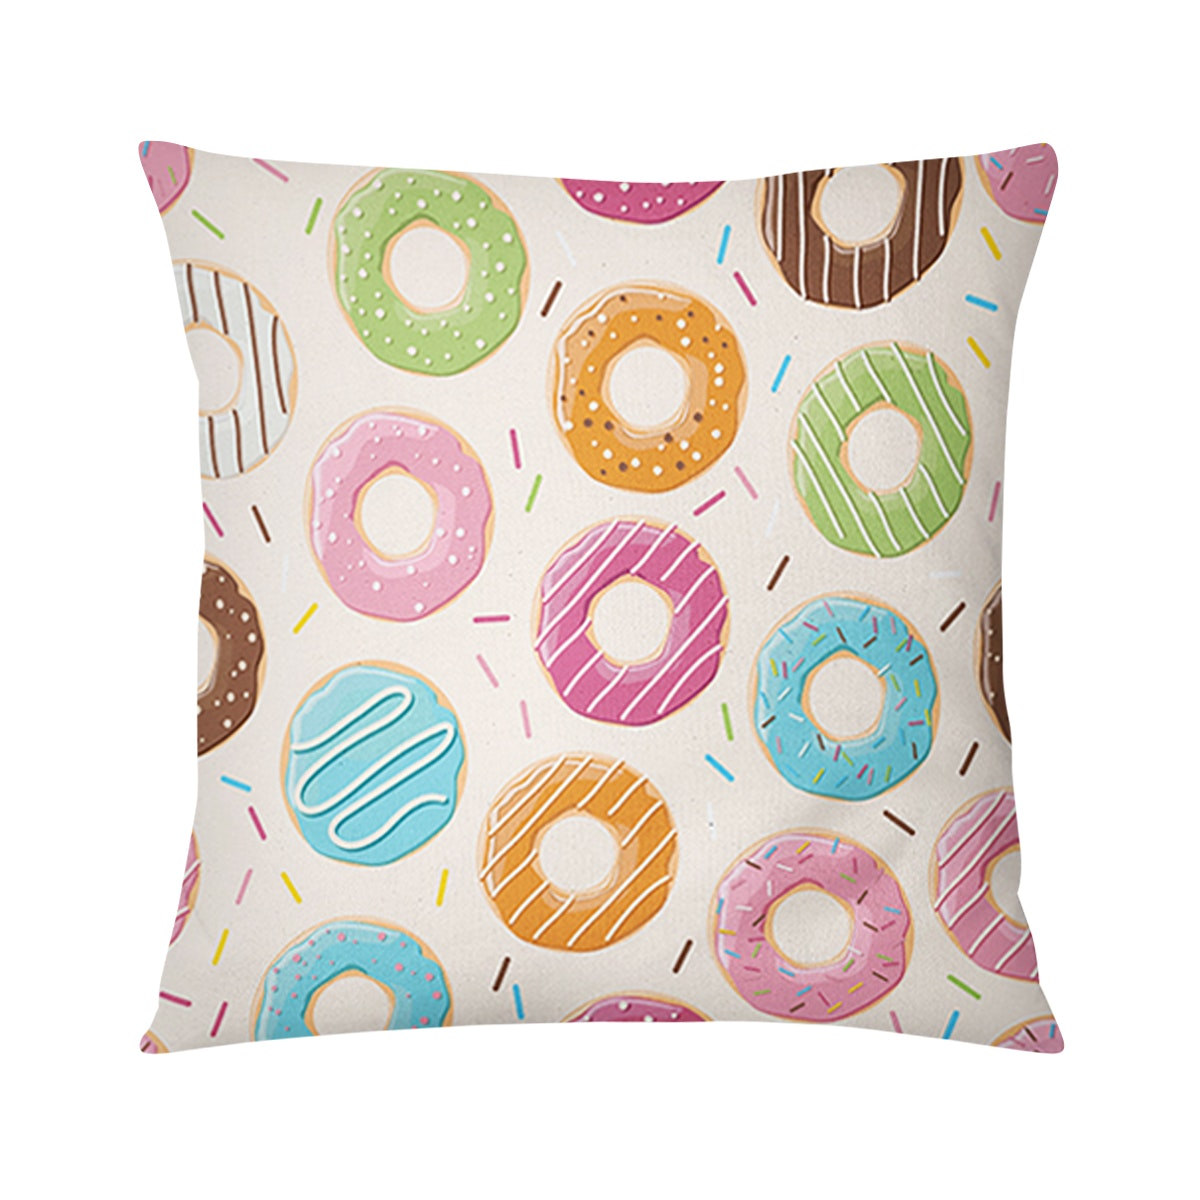 Tees Cushion Motif Colorful Donuts Pillow